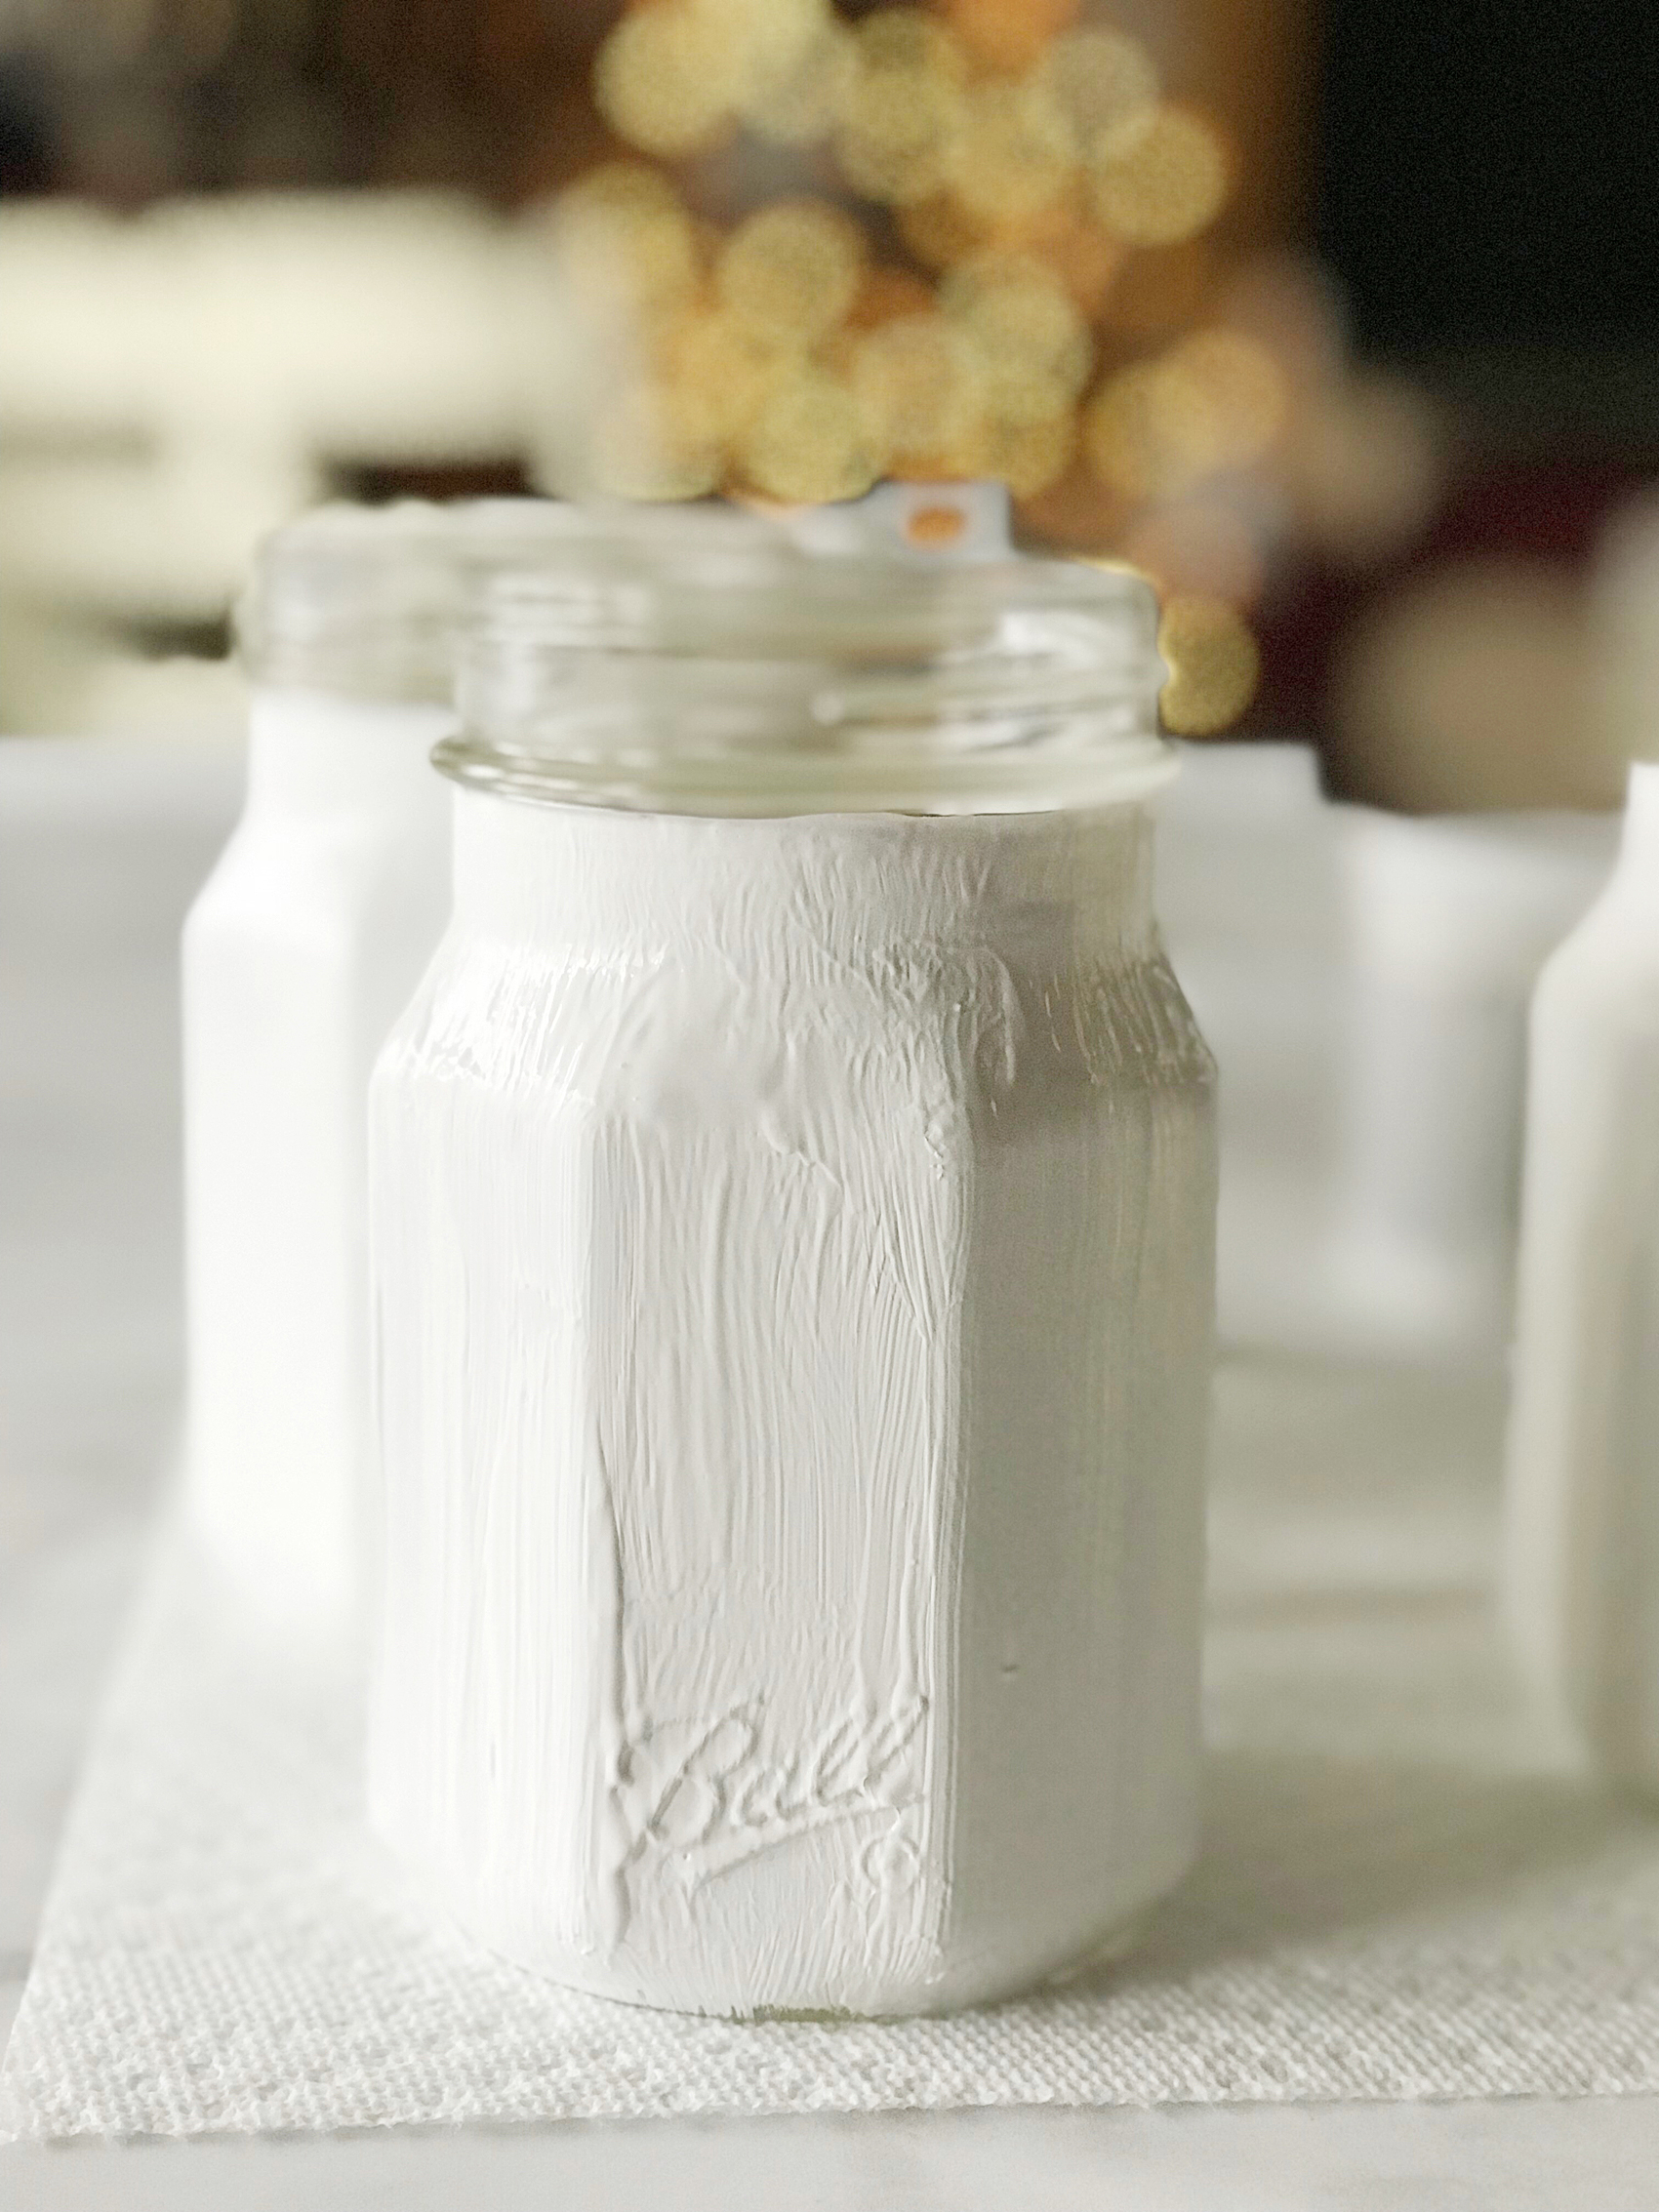 Love the Buffalo Check trend? Yep, me too! I thought it would be fun to use some of the Ball® Giving Jars to create some Buffalo Check Jars to use as gifts this Holiday Season. Here's how you can make some of your own.